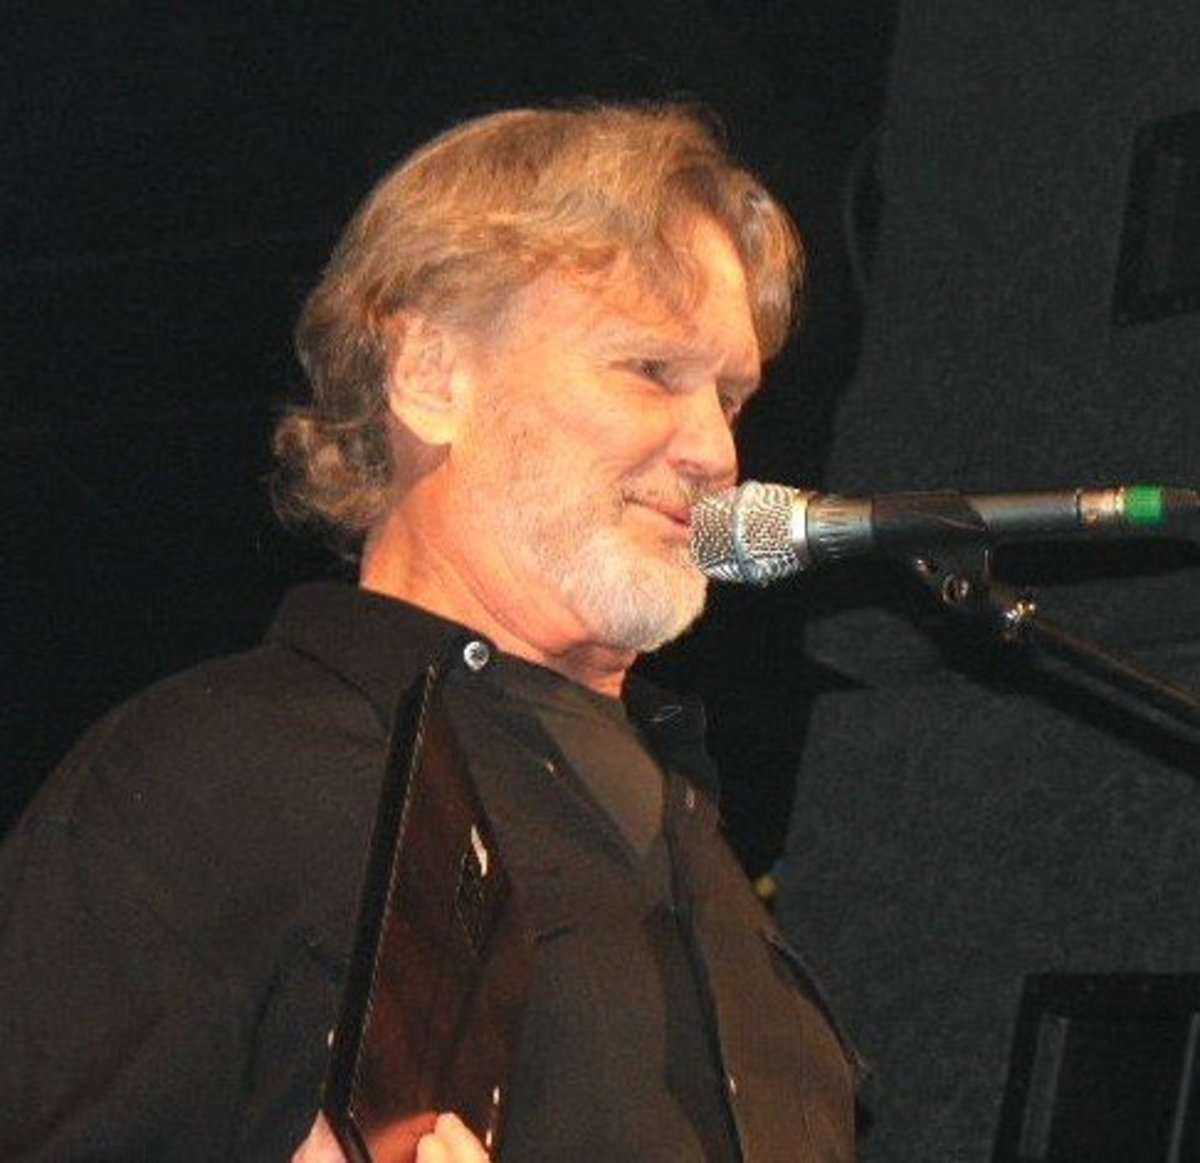 Kris Kristofferson, Songwriter, Singer, Actor